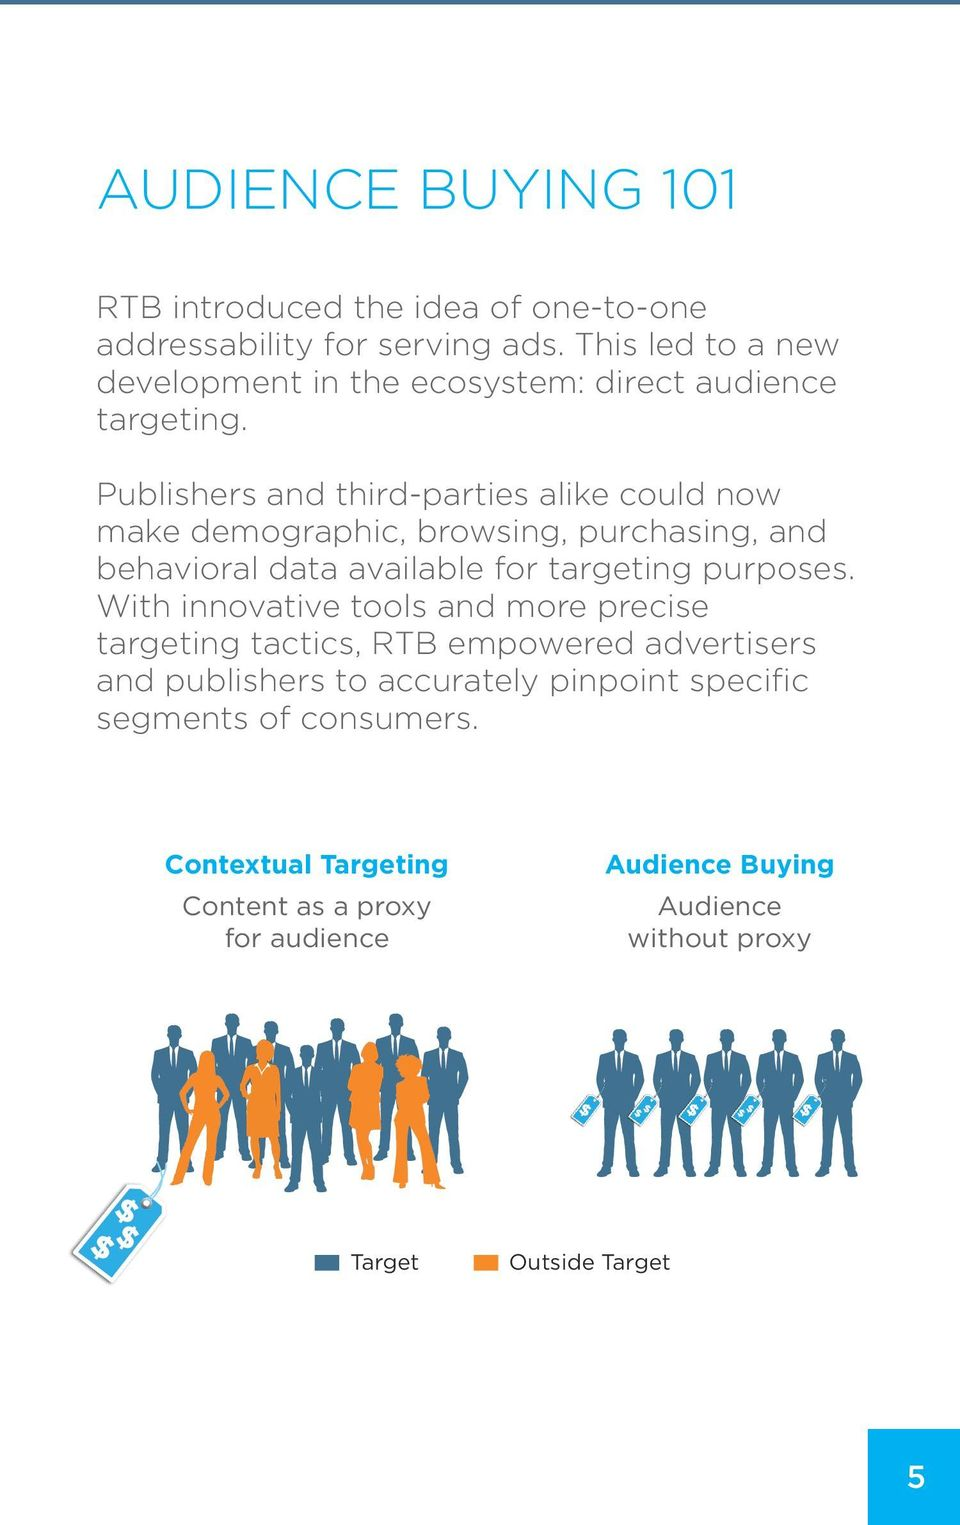 Publishers and third-parties alike could now make demographic, browsing, purchasing, and behavioral data available for targeting purposes.